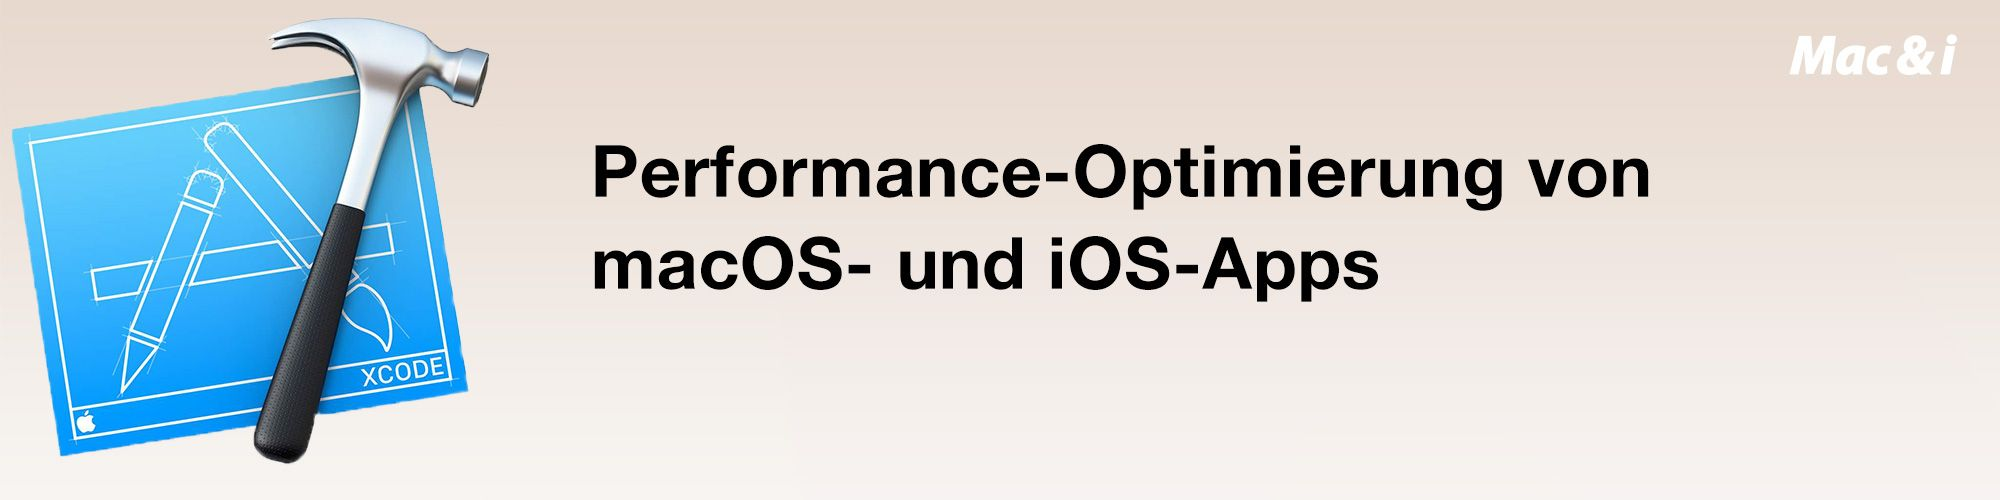 macOs-Performance